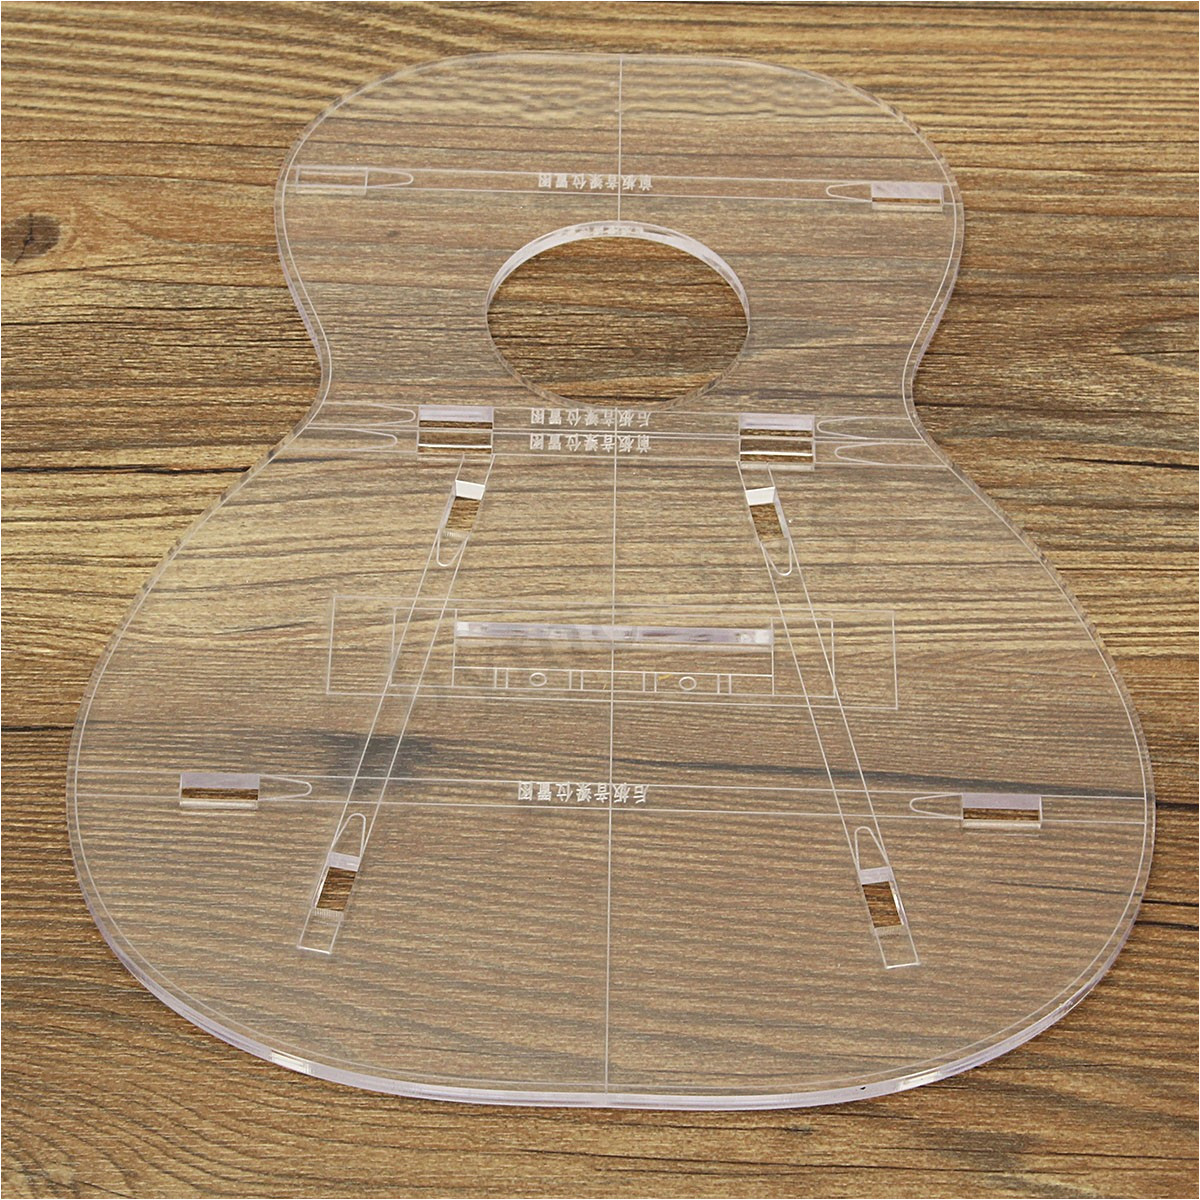 Acrylic Guitar Templates Clear Acrylic Guitar Body Part Template for 23 39 39 Ukulele